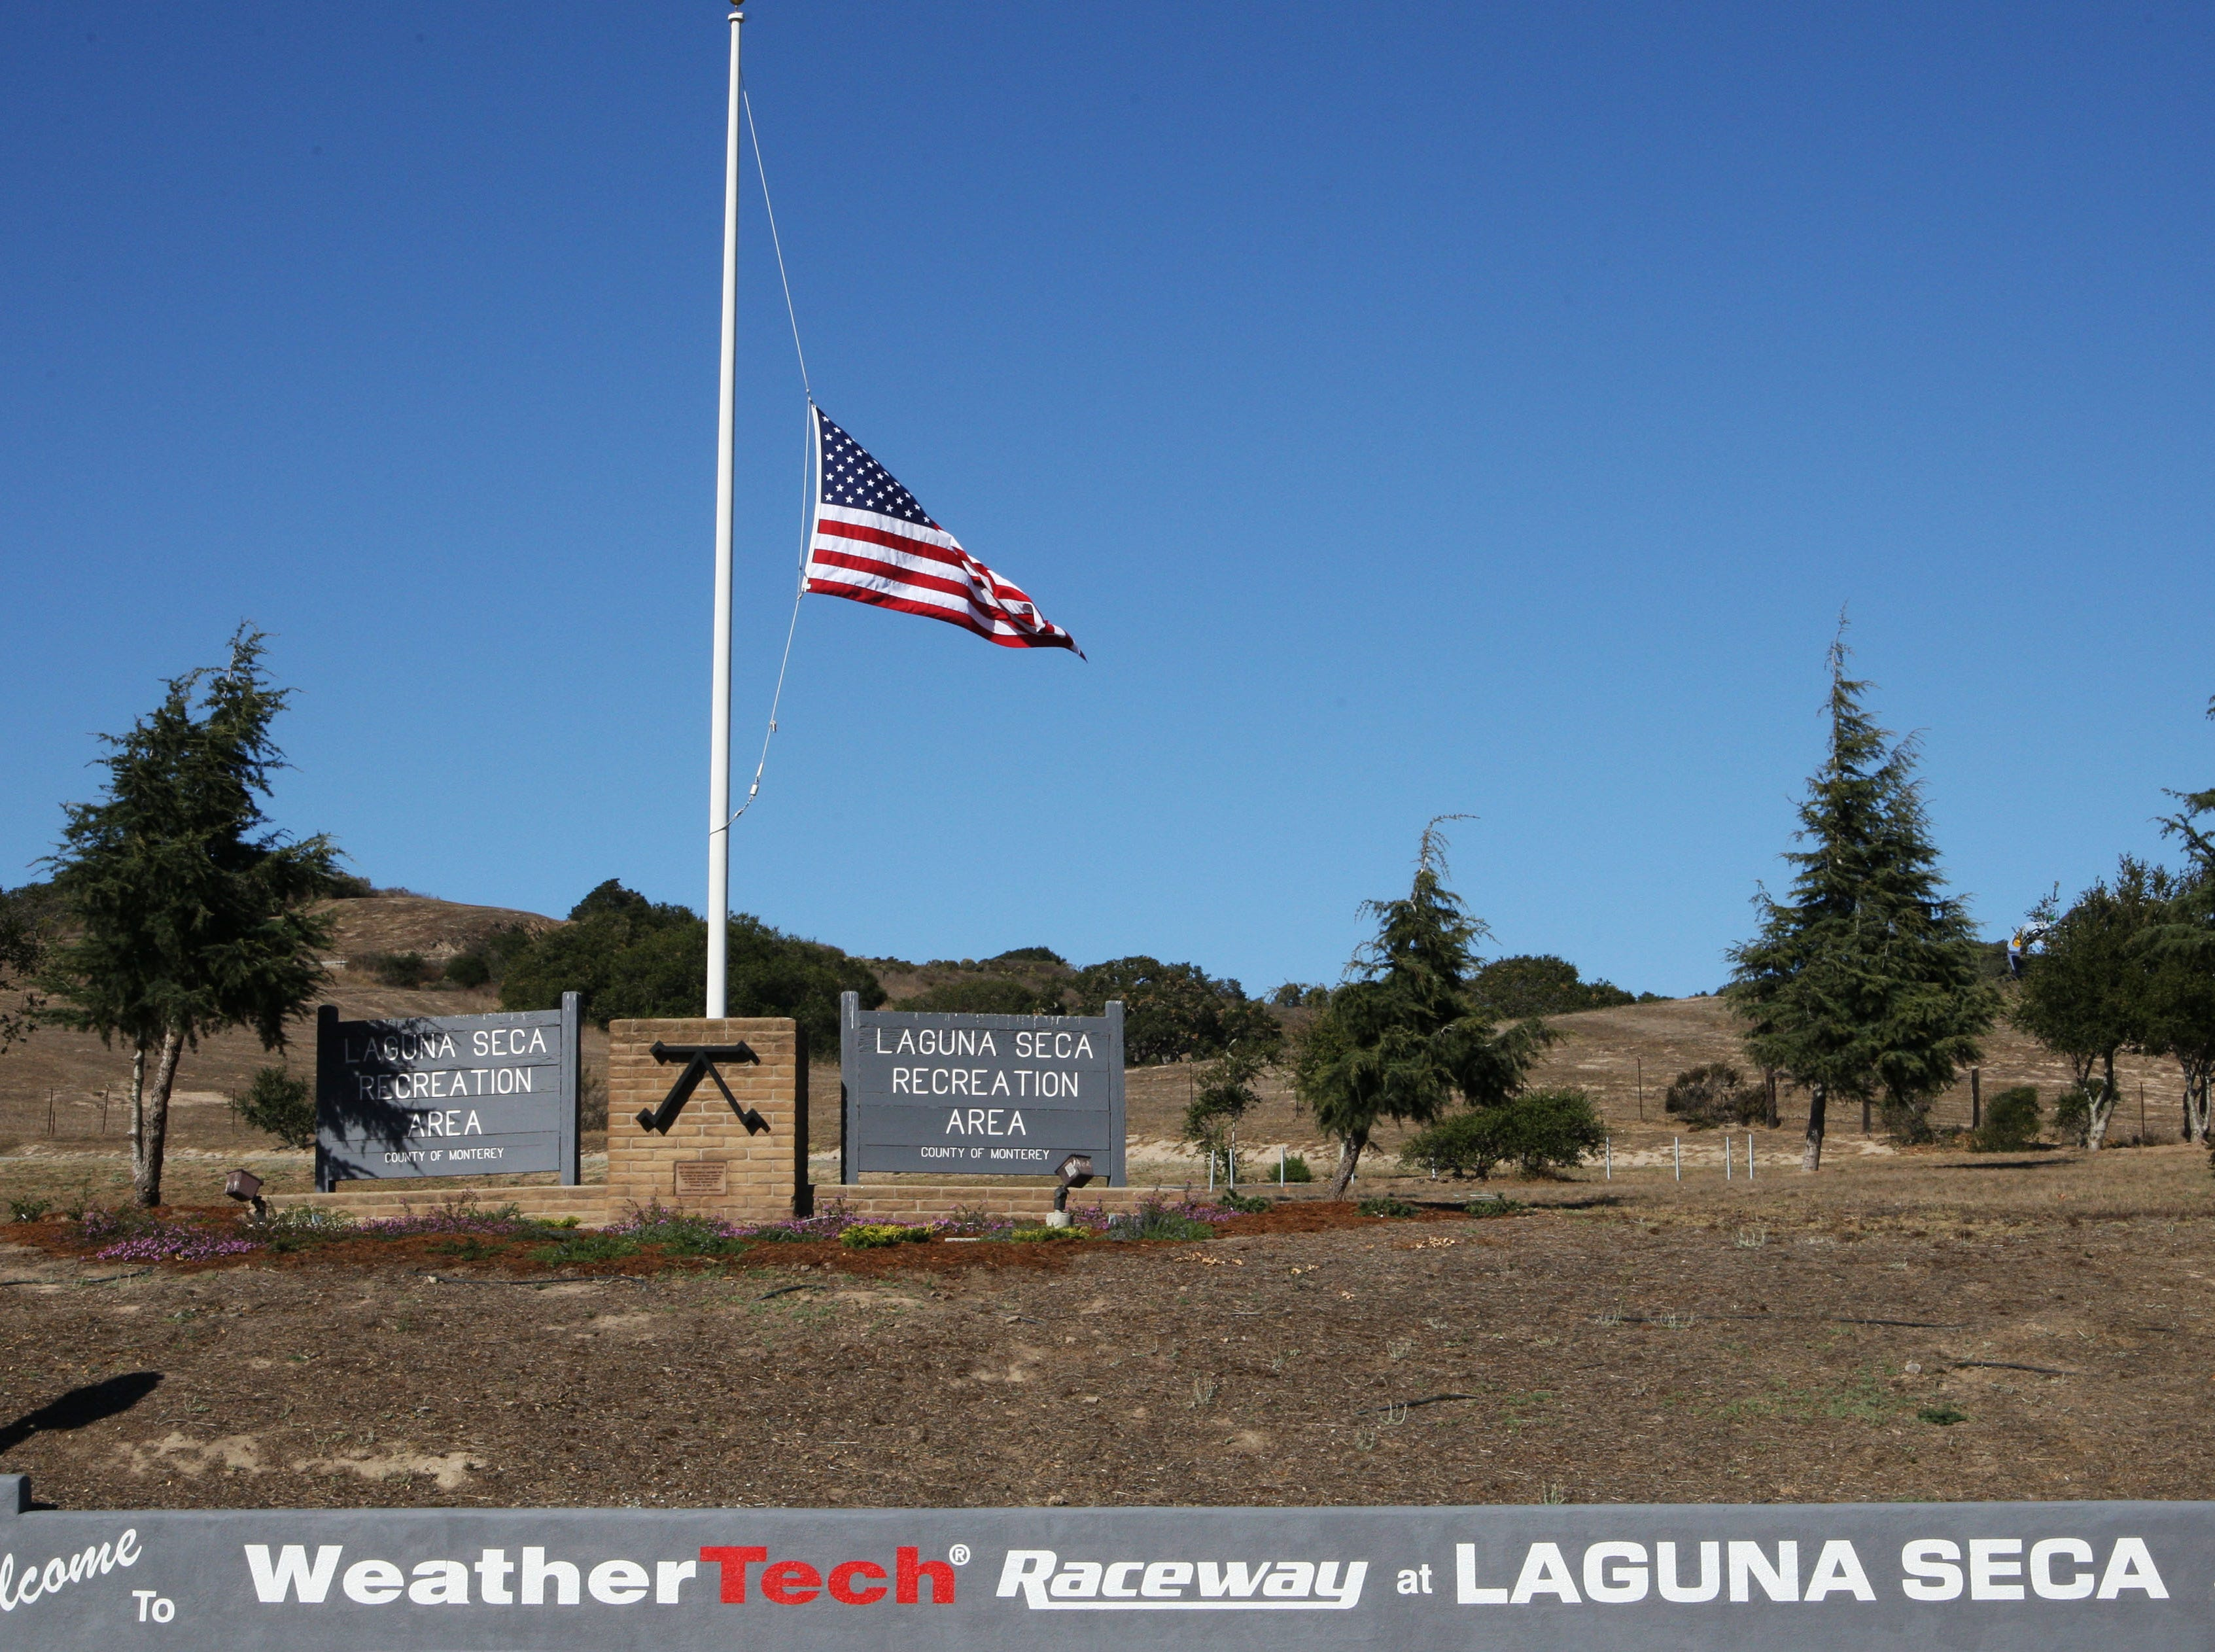 Laguna Seca flies the American flag at half mast after the death of Richard Reins on the track.